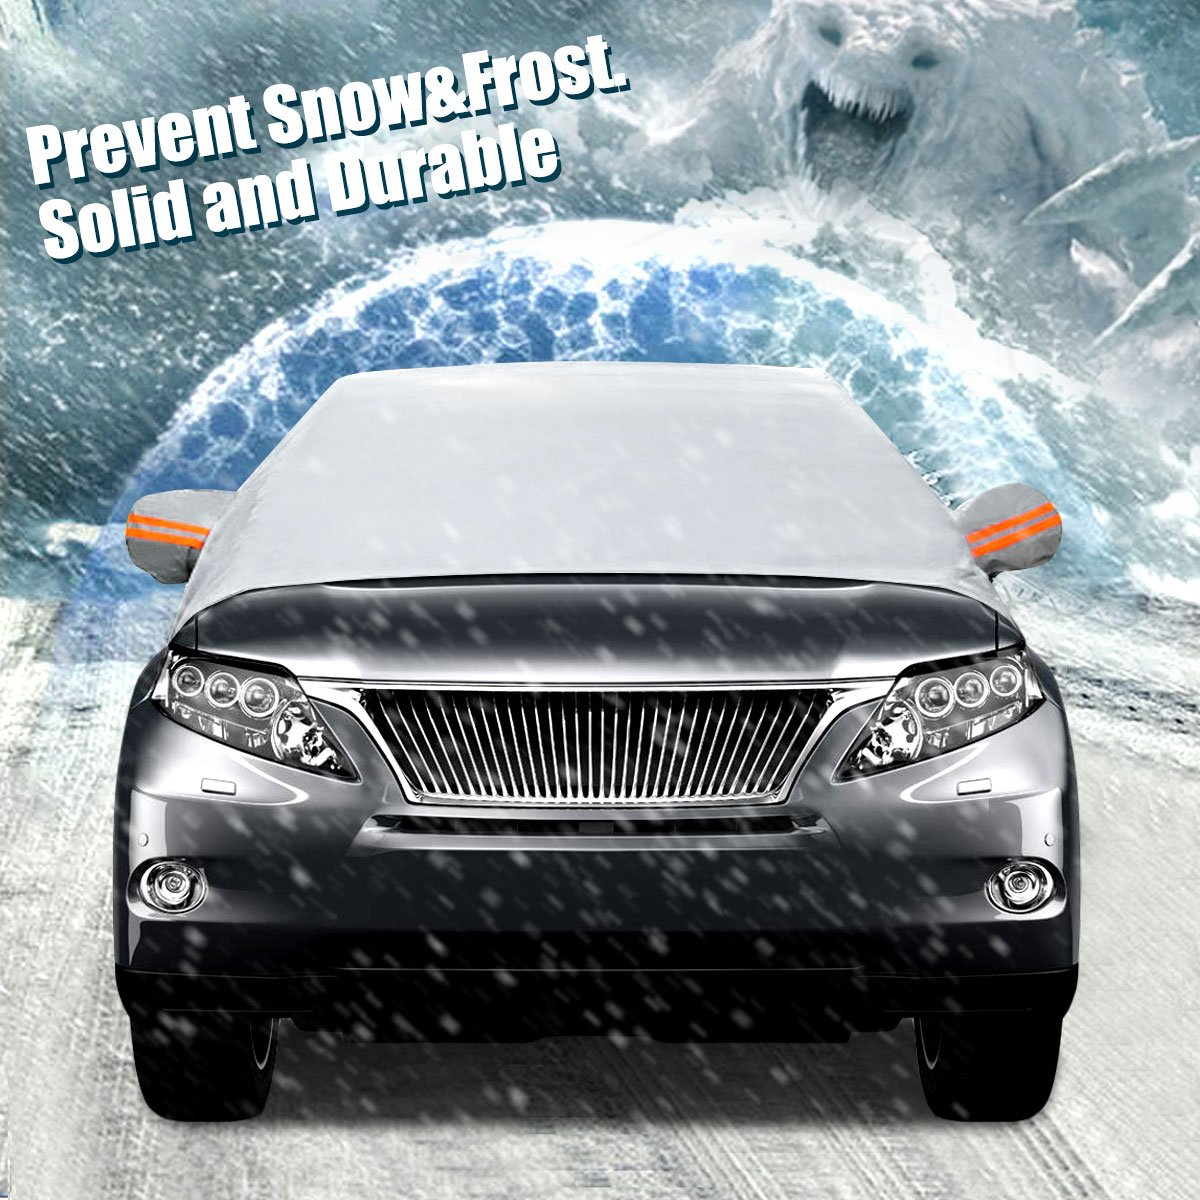 Audew Car Windscreen Cover Windshield Cover Snow Cover Ice Protector Foils Ice Screen Sun Shade Protector Protects,Wipers and Mirrors Weatherproof, Anti-fouling, Sun-proof Large (Fit SUV) AudewxS9KUxuTt